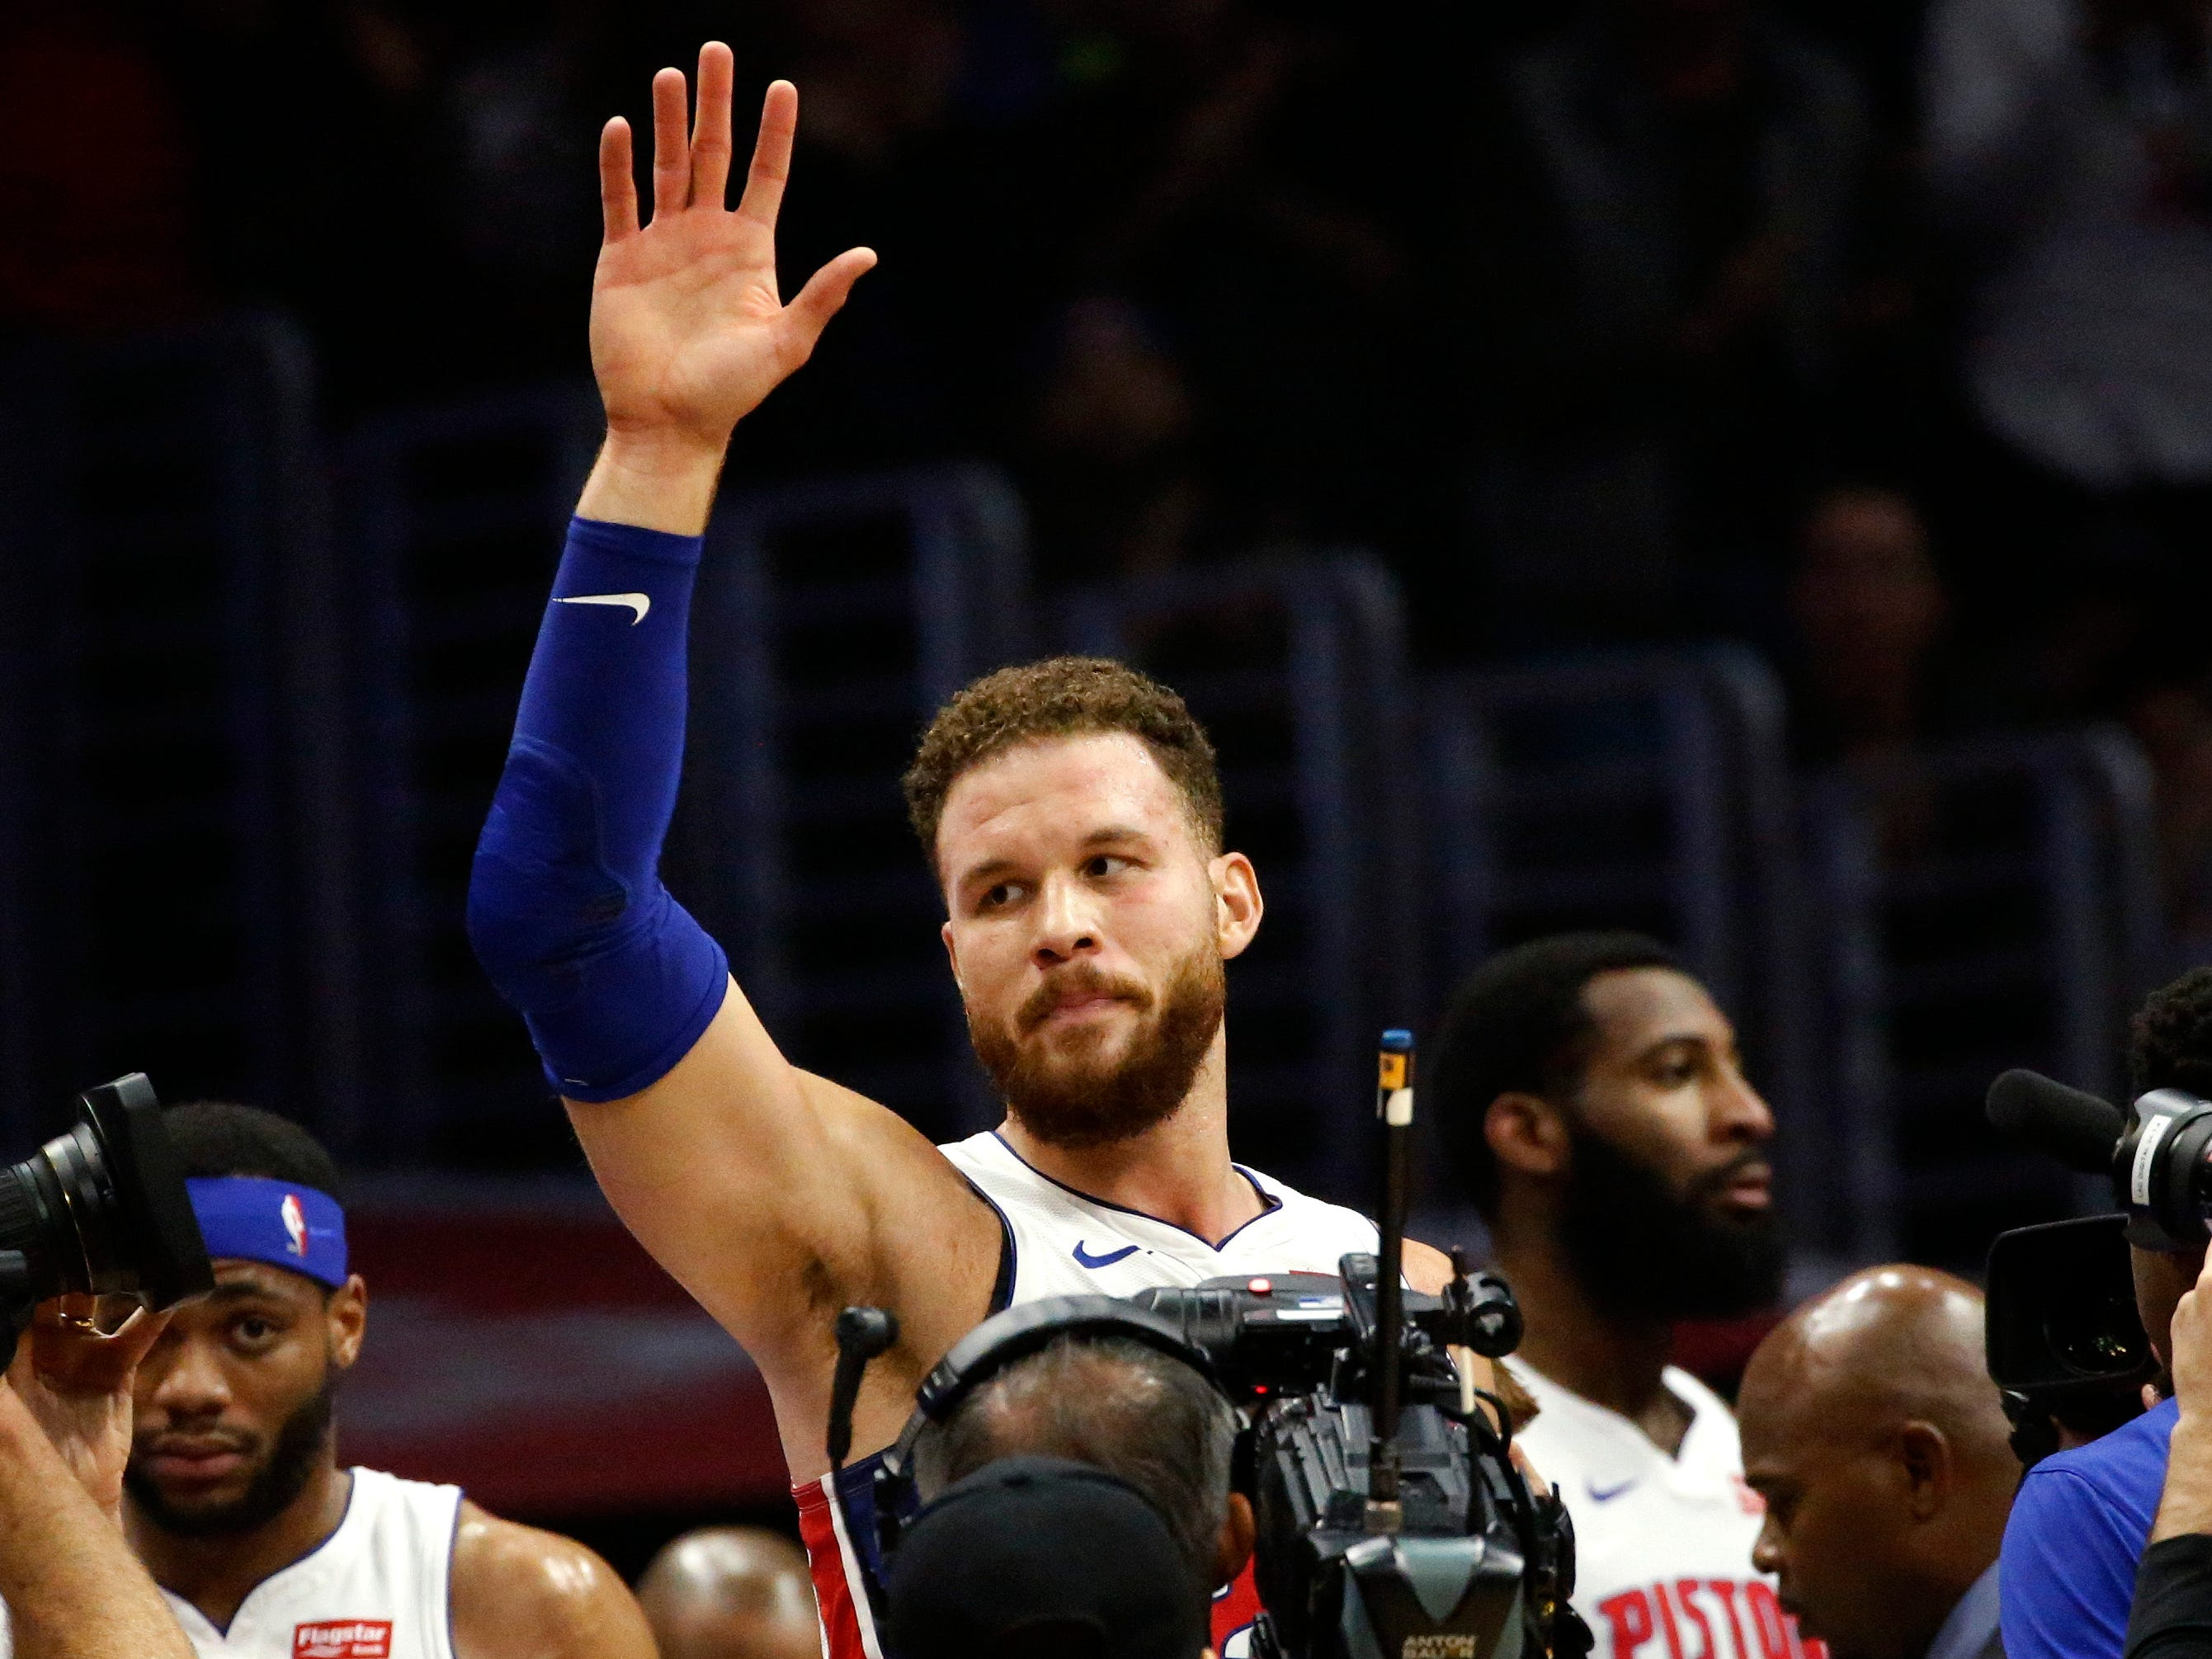 Pistons forward Blake Griffin waves to fans during the first half on Jan. 12, 2019, in Los Angeles.